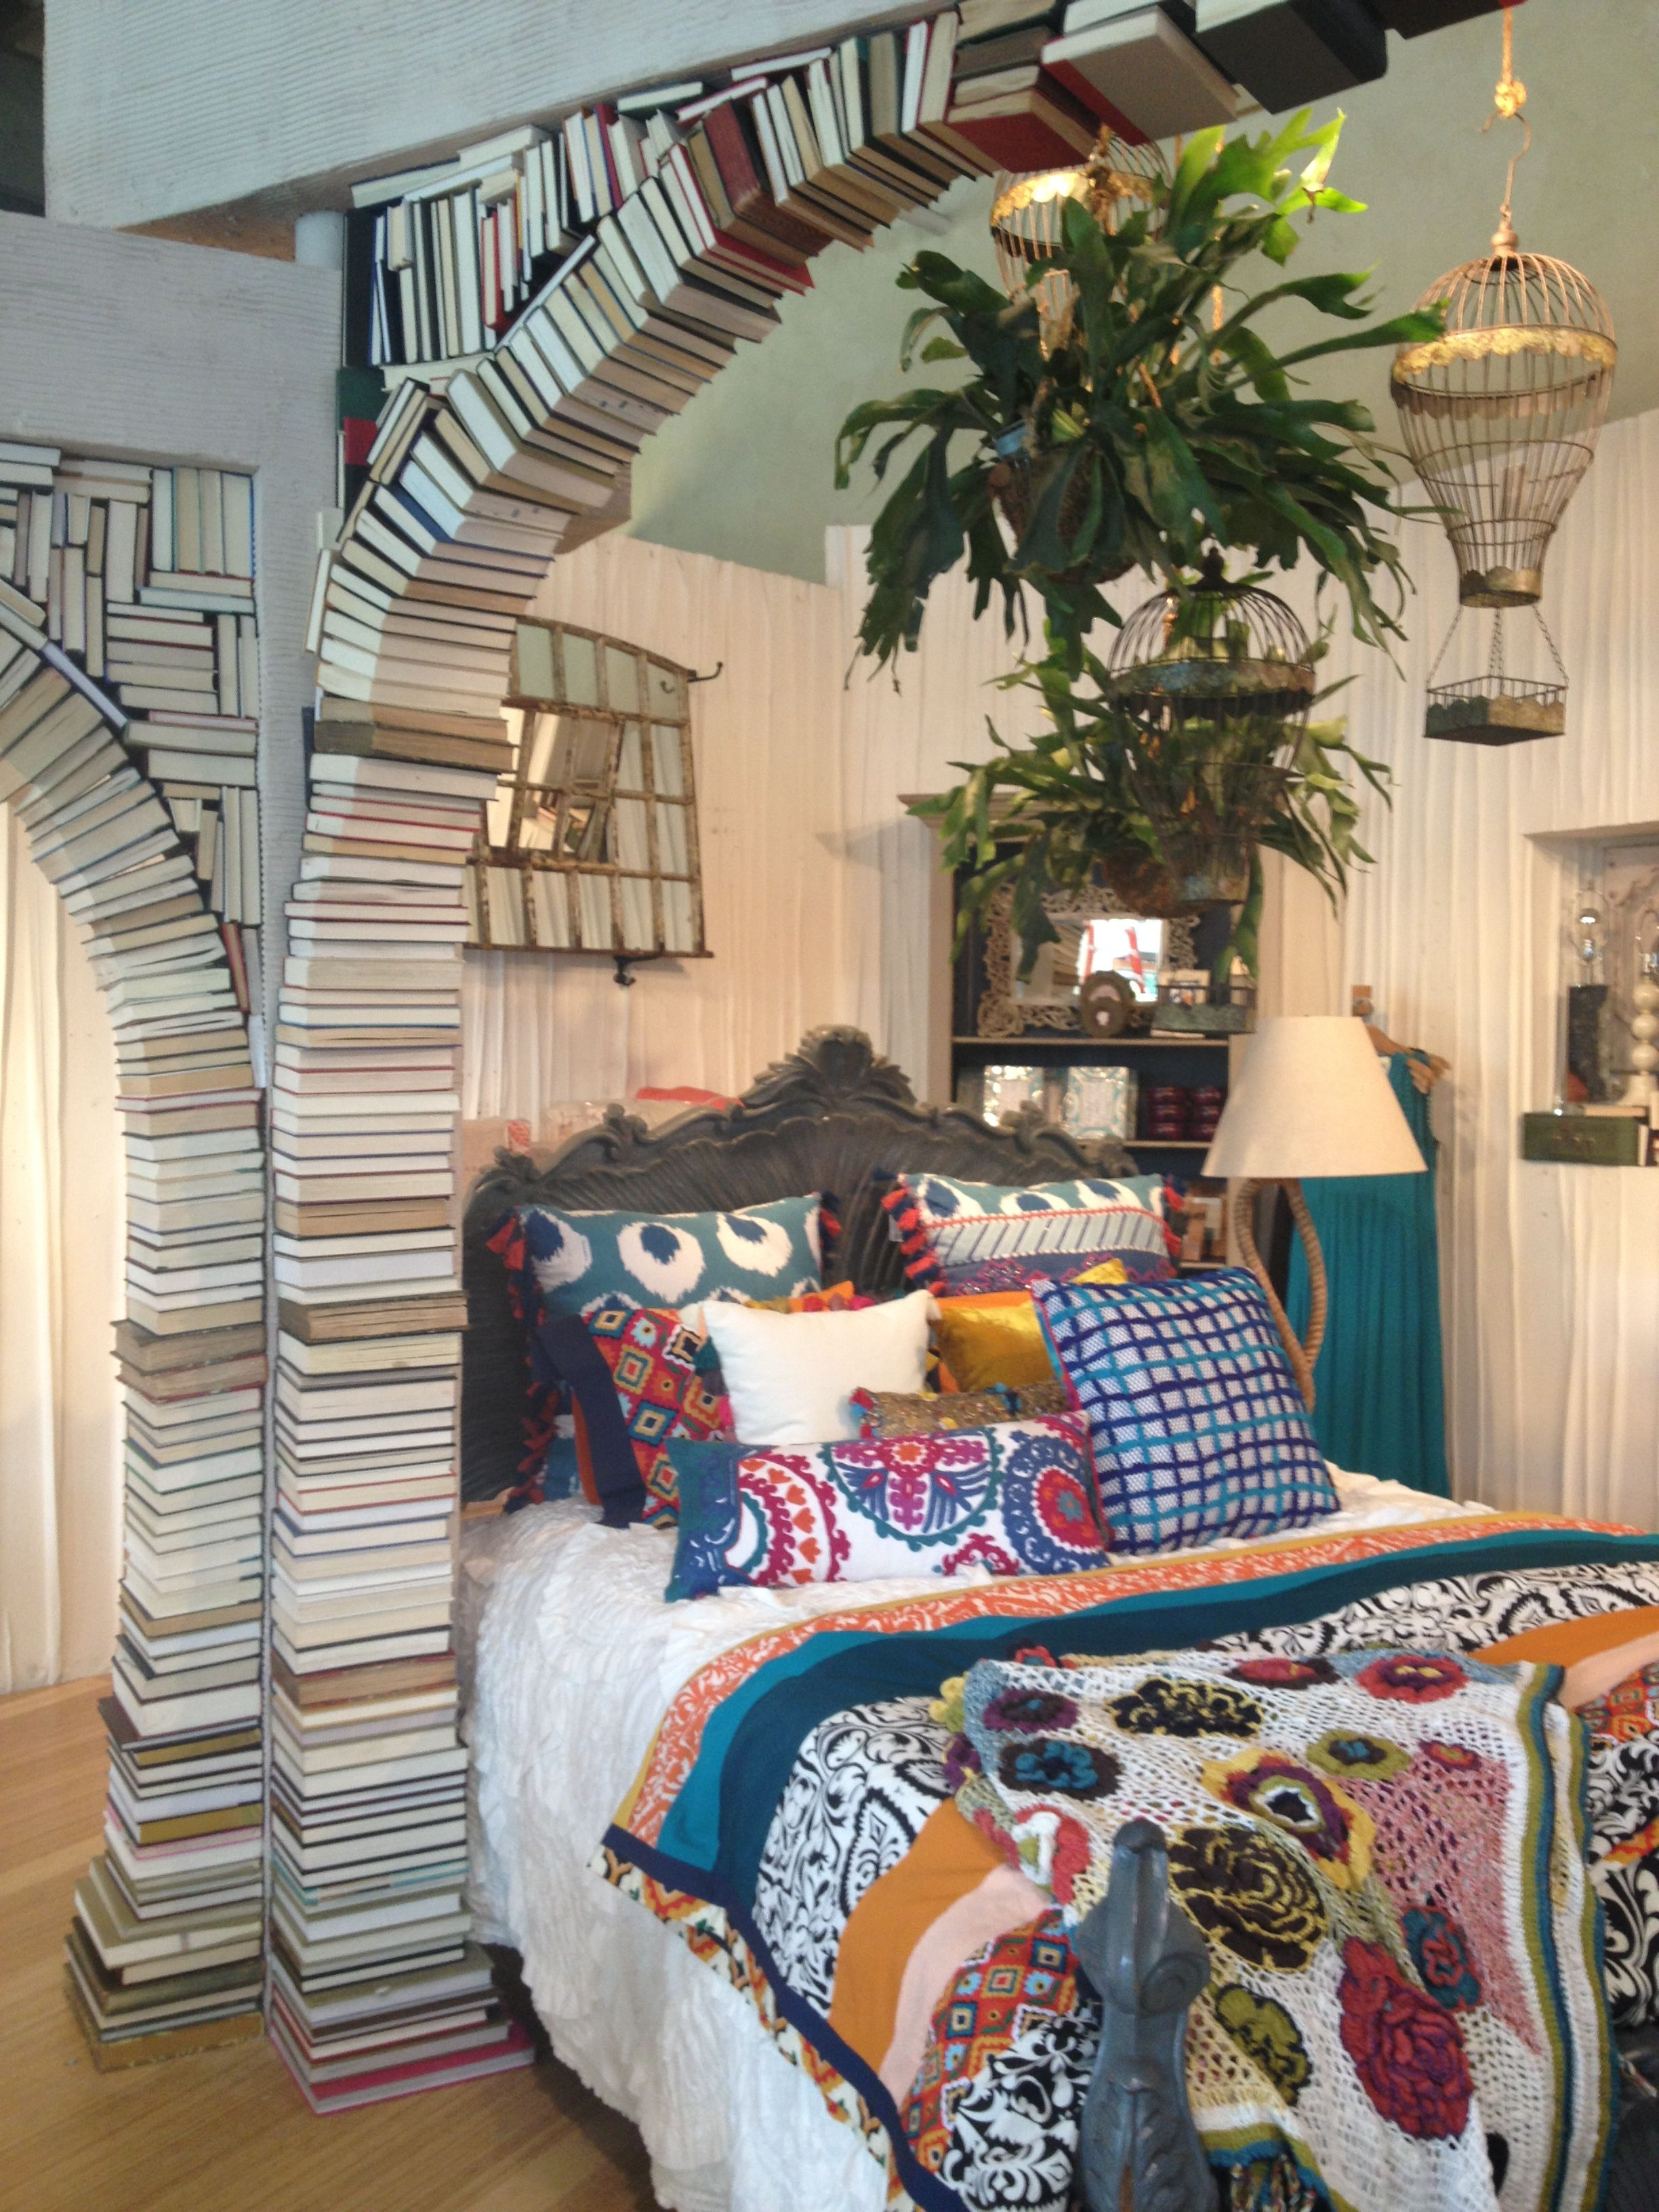 Anthropologie Display. Book Arch.